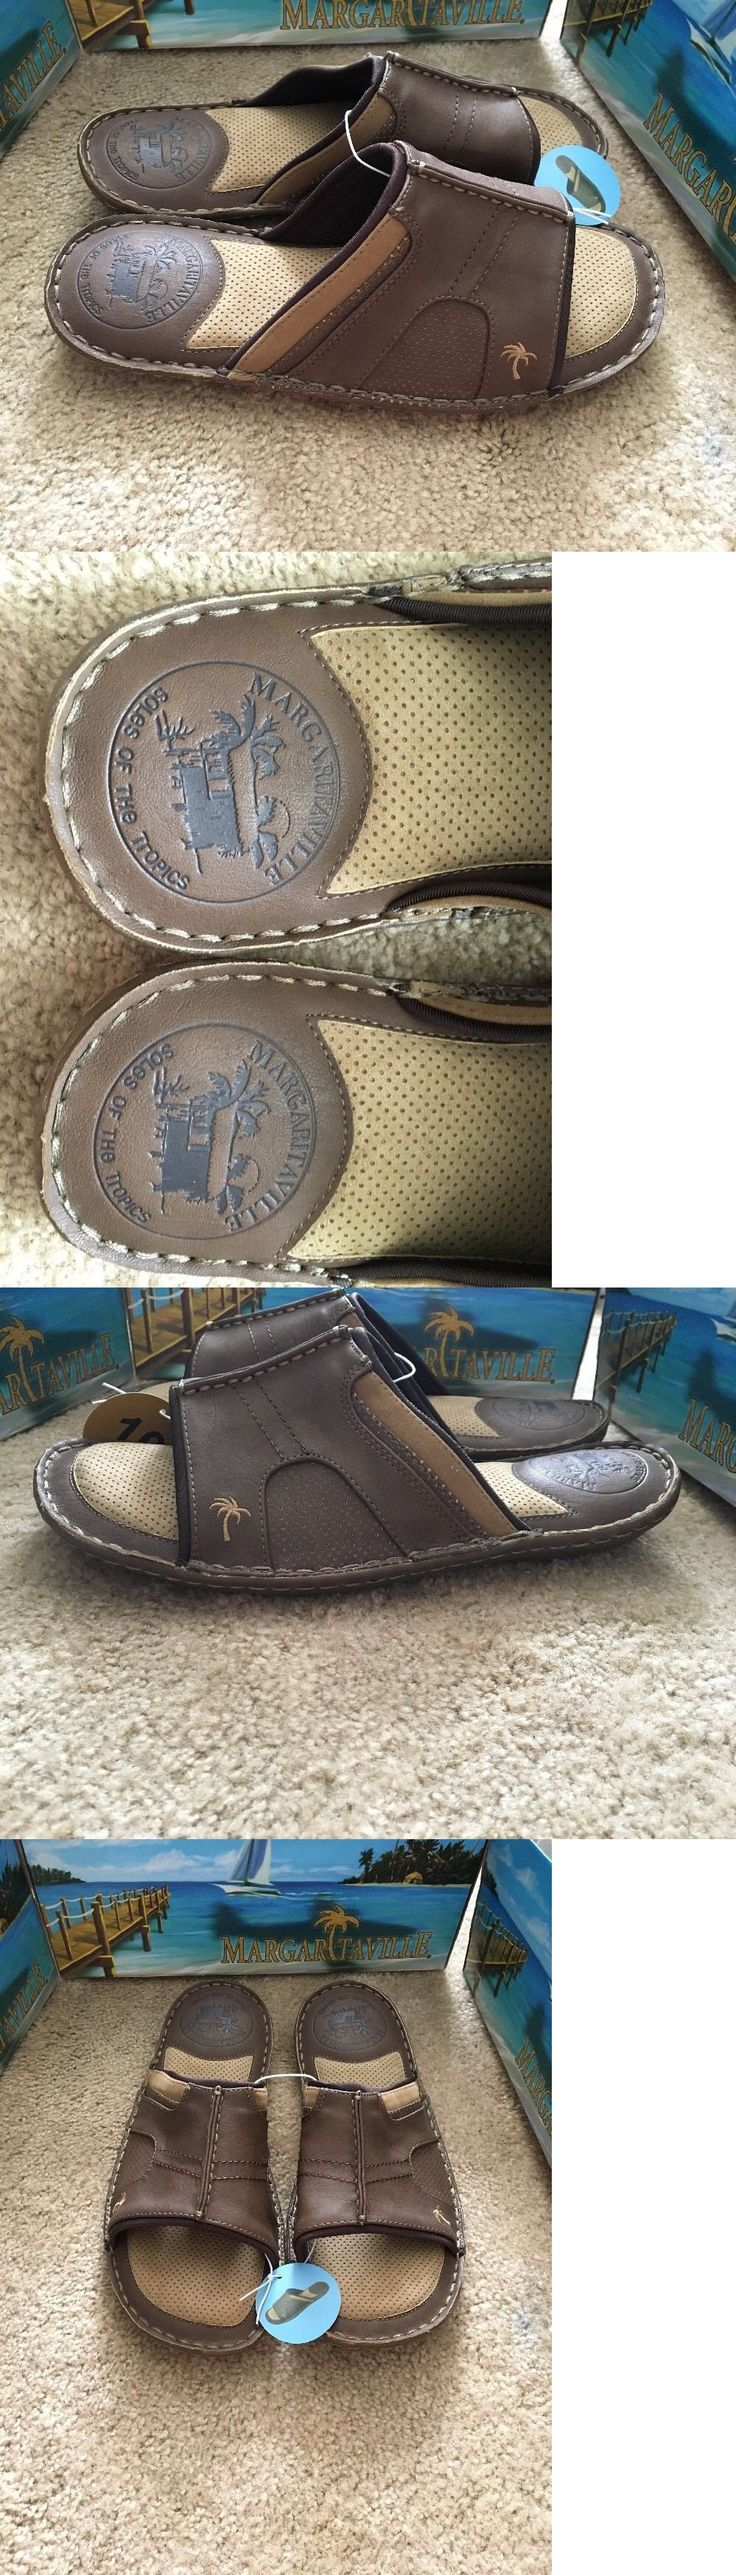 Sandals and Flip Flops 11504: New Margaritaville Brown Grove Slide Flip Flops Sandals Grove Mens Size 10 11 12 -> BUY IT NOW ONLY: $32 on eBay!